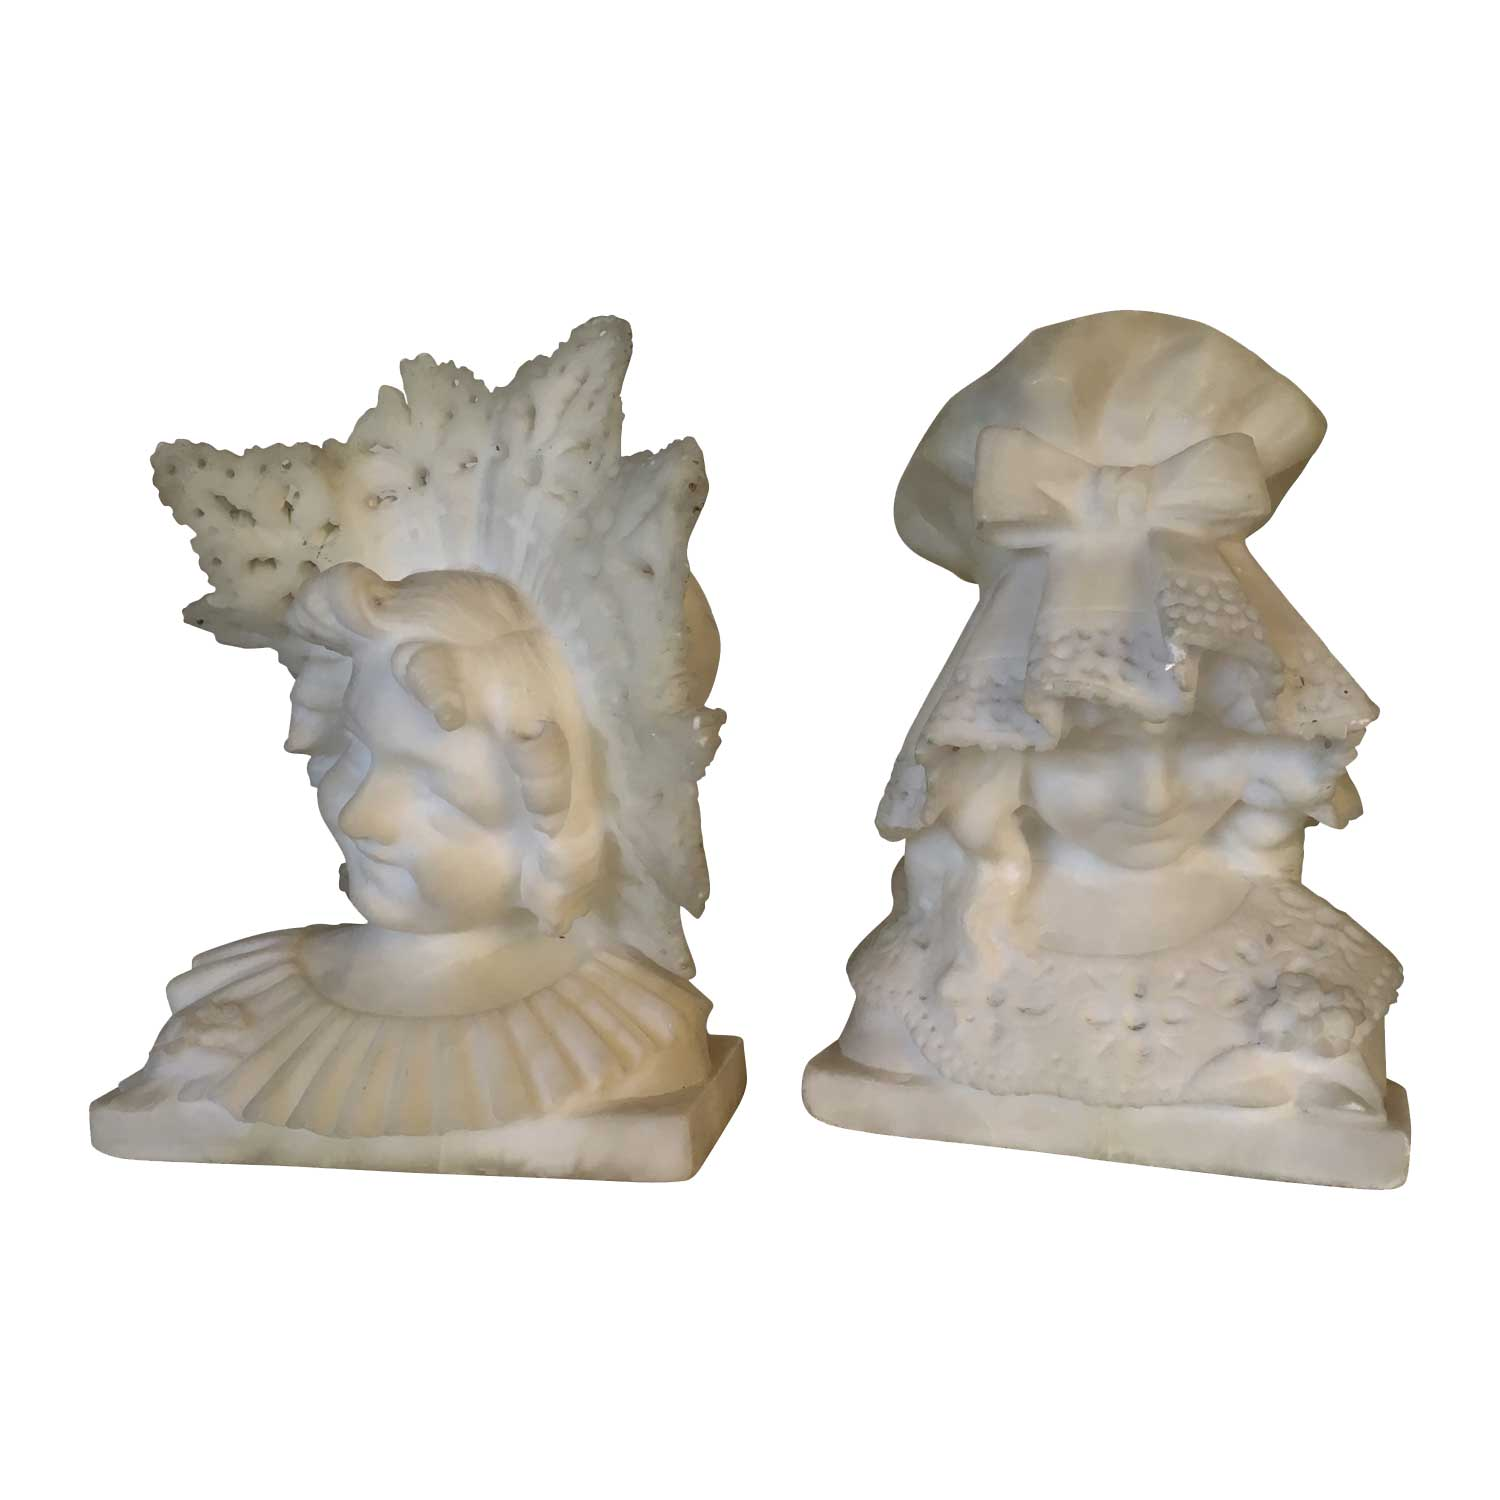 Pair of Alabaster Girl's Busts